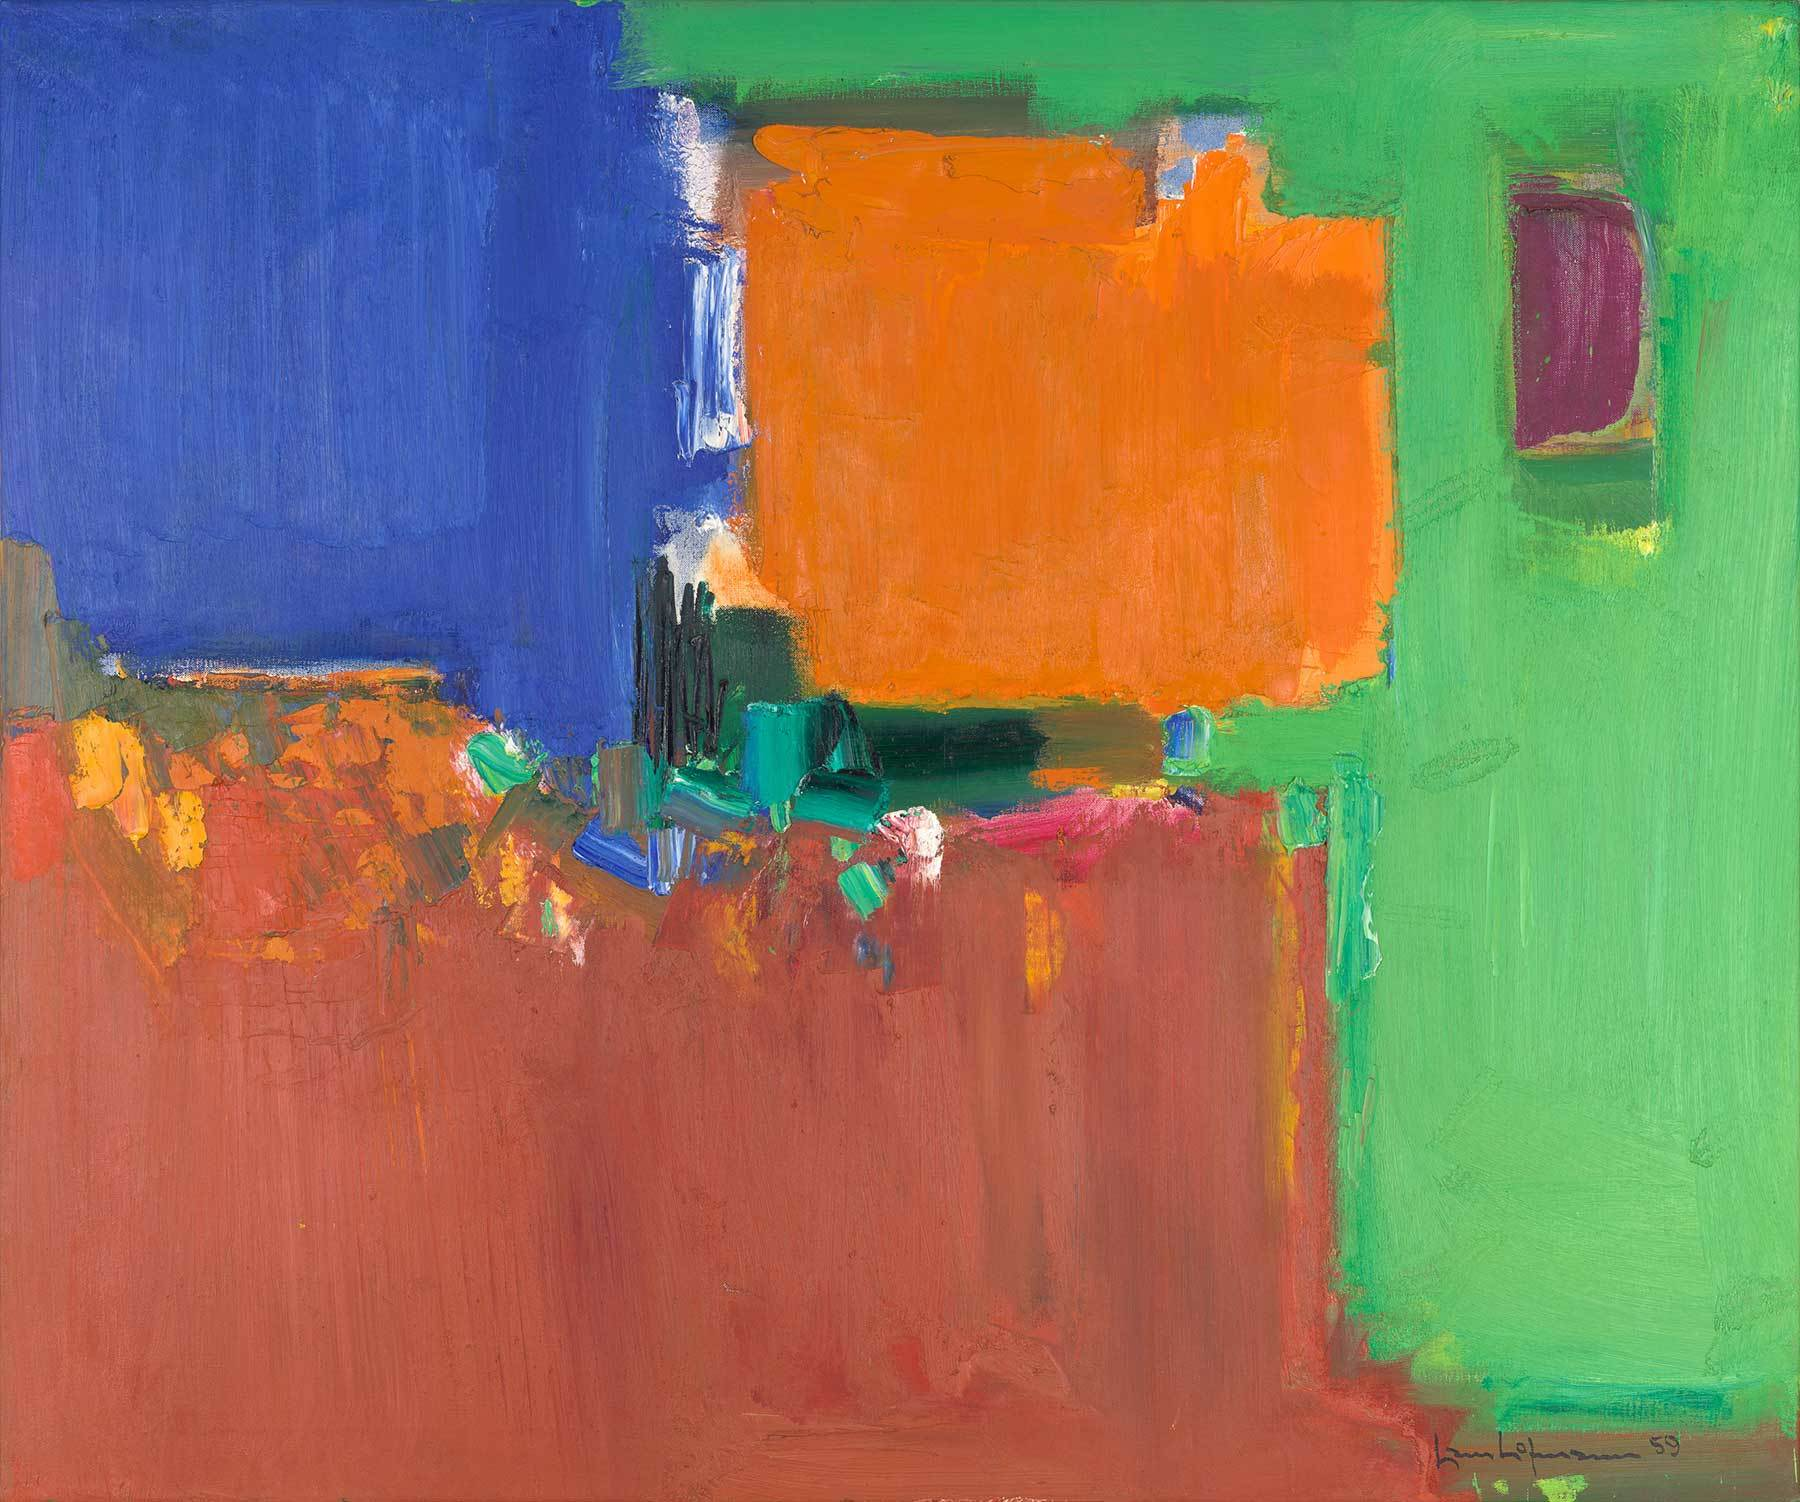 Hans Hofmann: Indian Summer, 1959